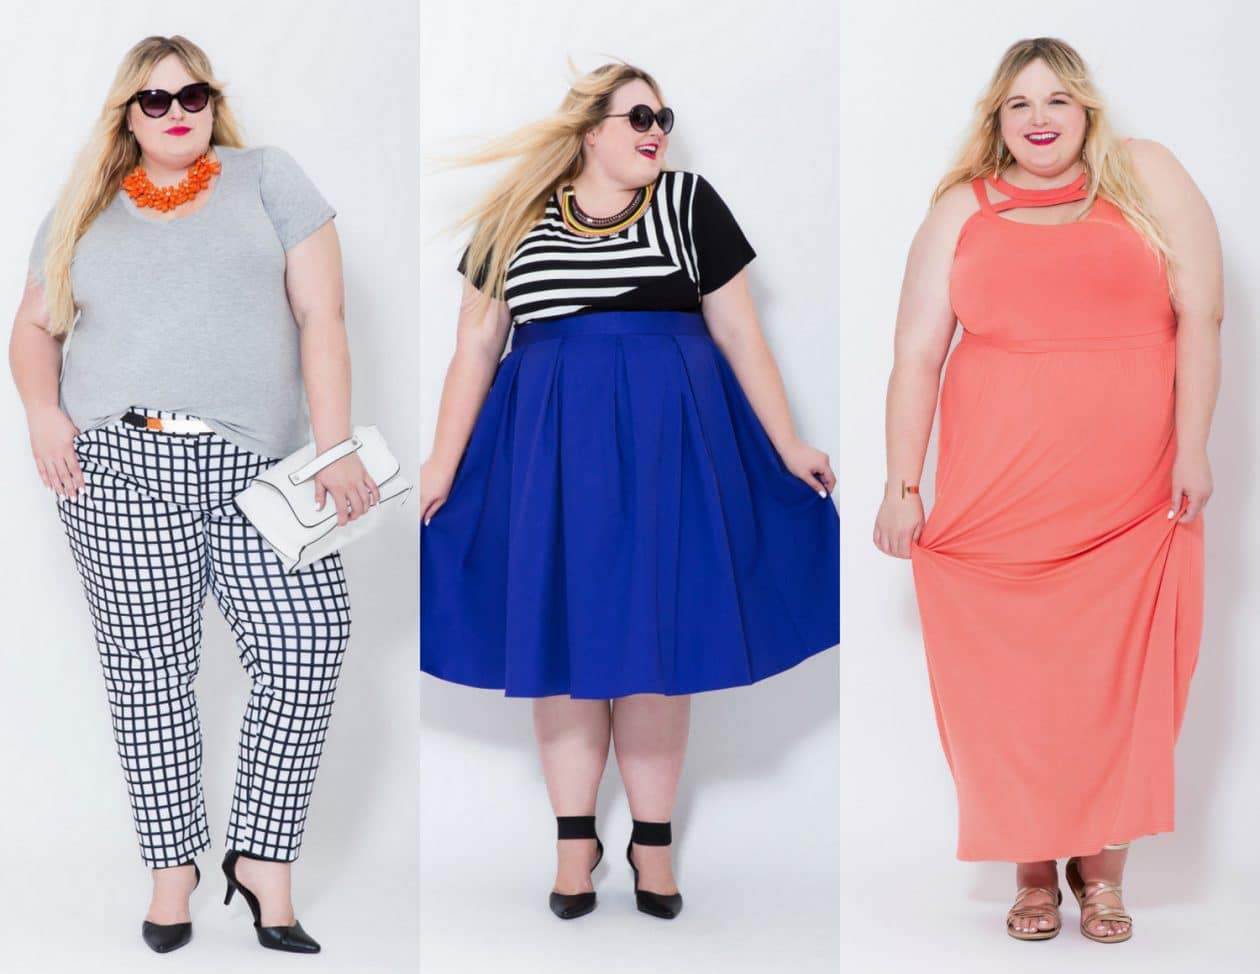 Reah Norman Models in Eloquii's Newest Size 26/28 Look Book on The Curvy Fashionista